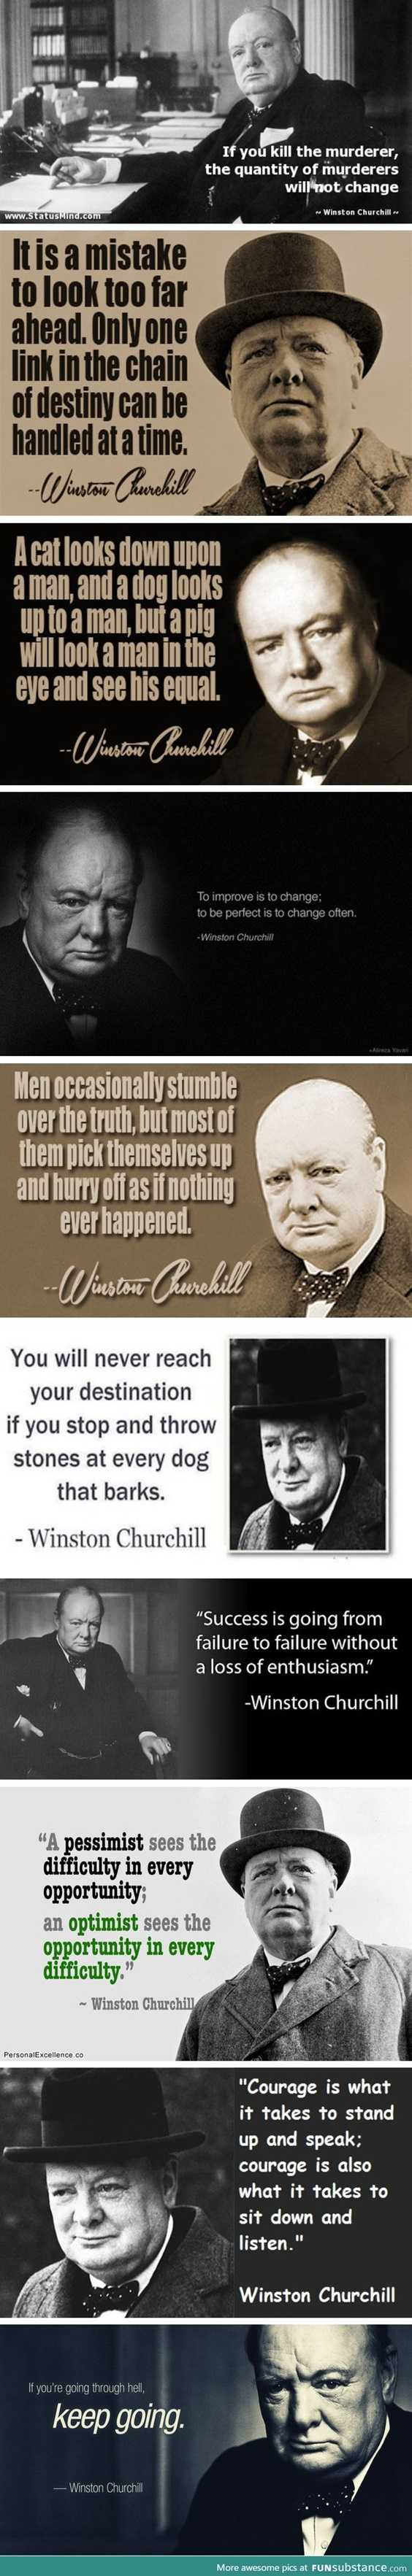 153 Winston Churchill Quotes Everyone Need to Read Inspiration 33